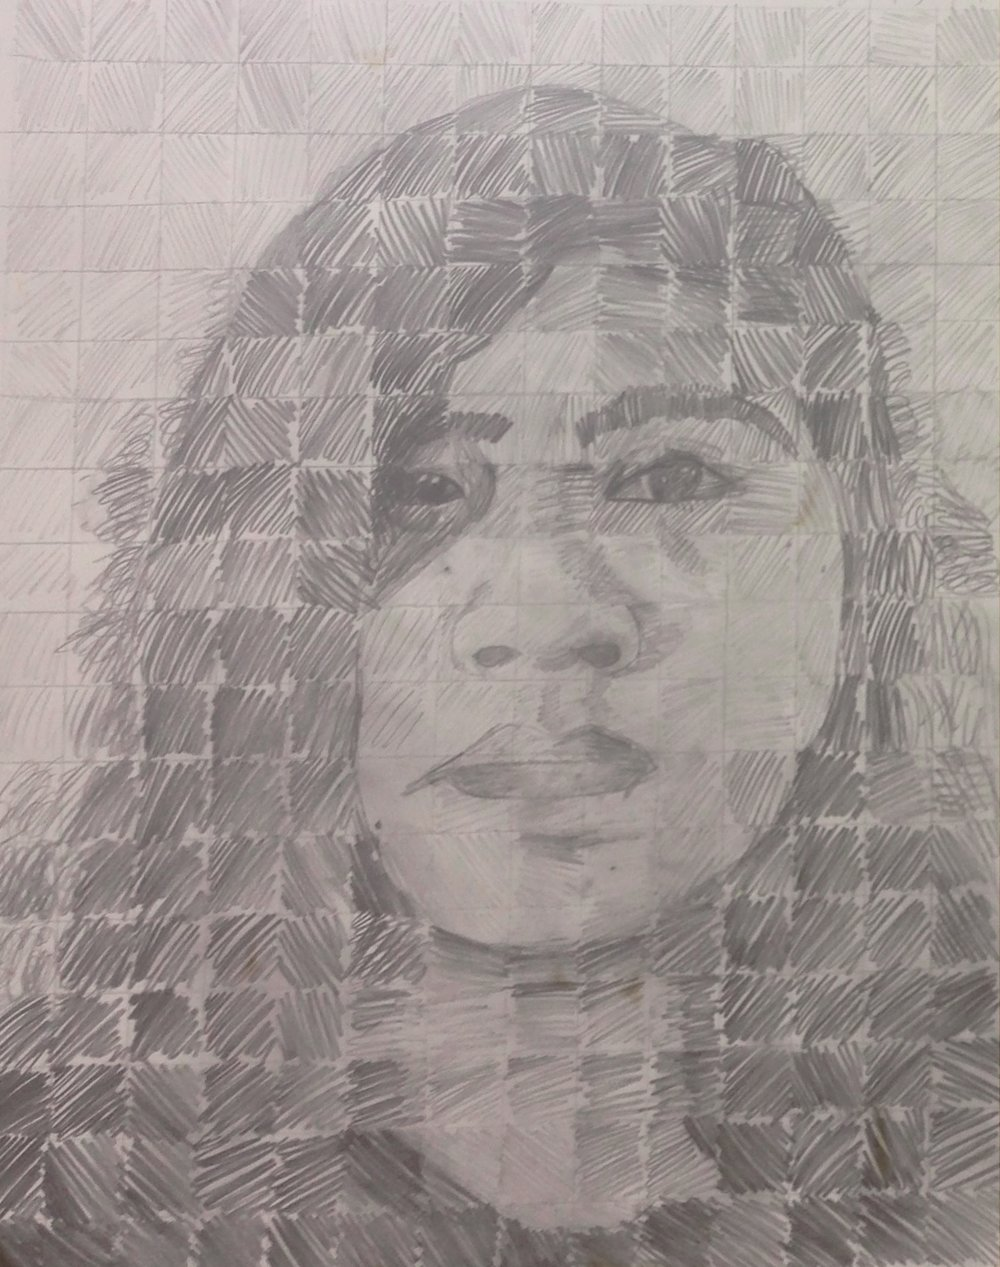 self portrait based on Chuck Close | 7th grade